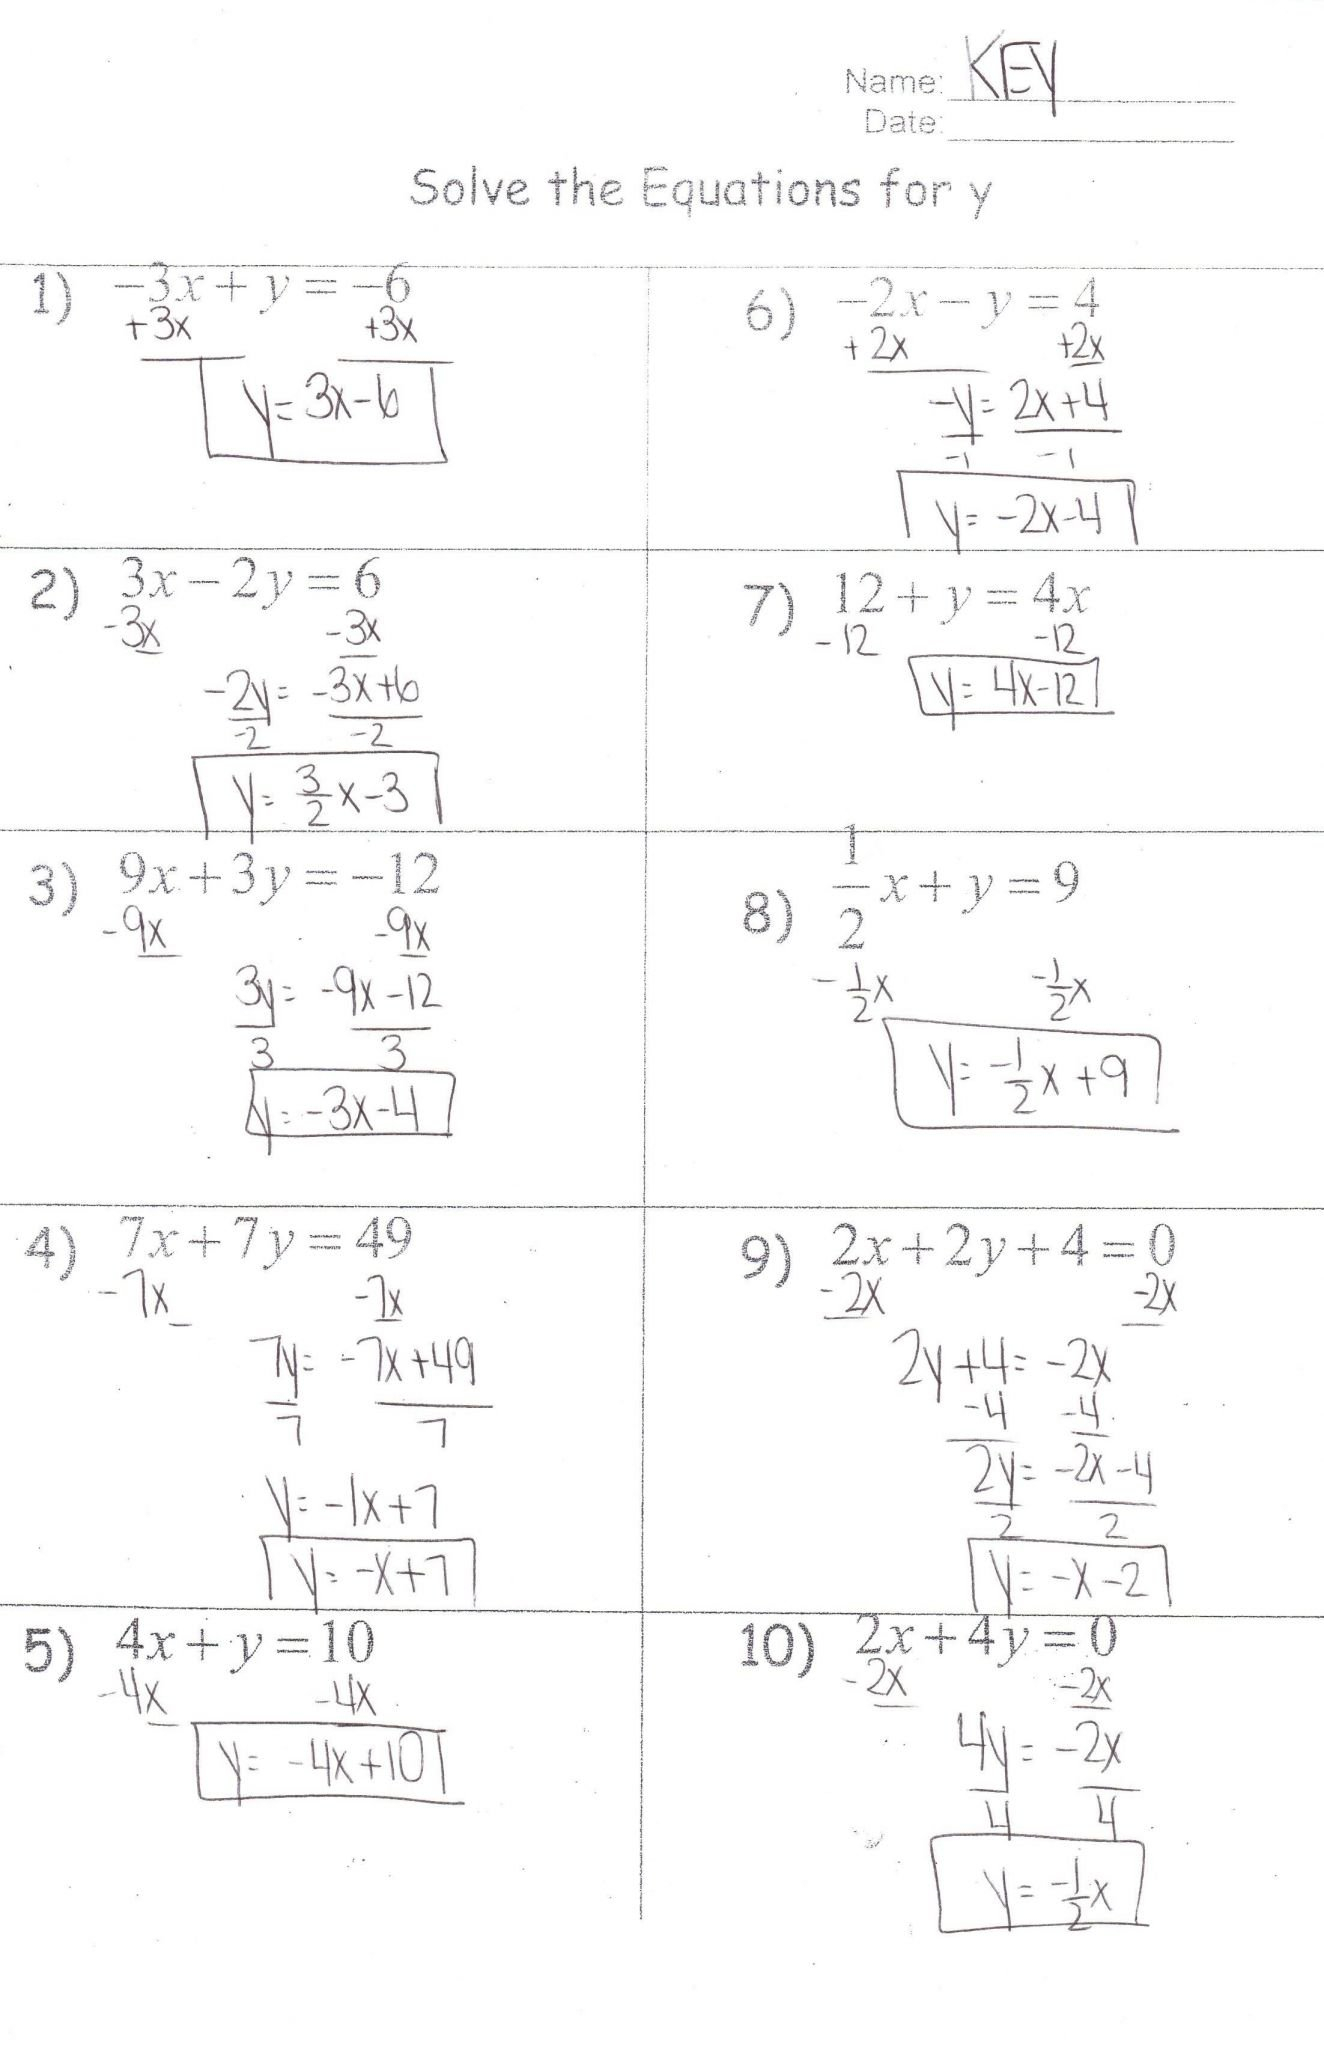 Solving Multi Step Equations With Distributive Property Worksheet Together With Solving Multi Step Equations With Distributive Property Worksheet